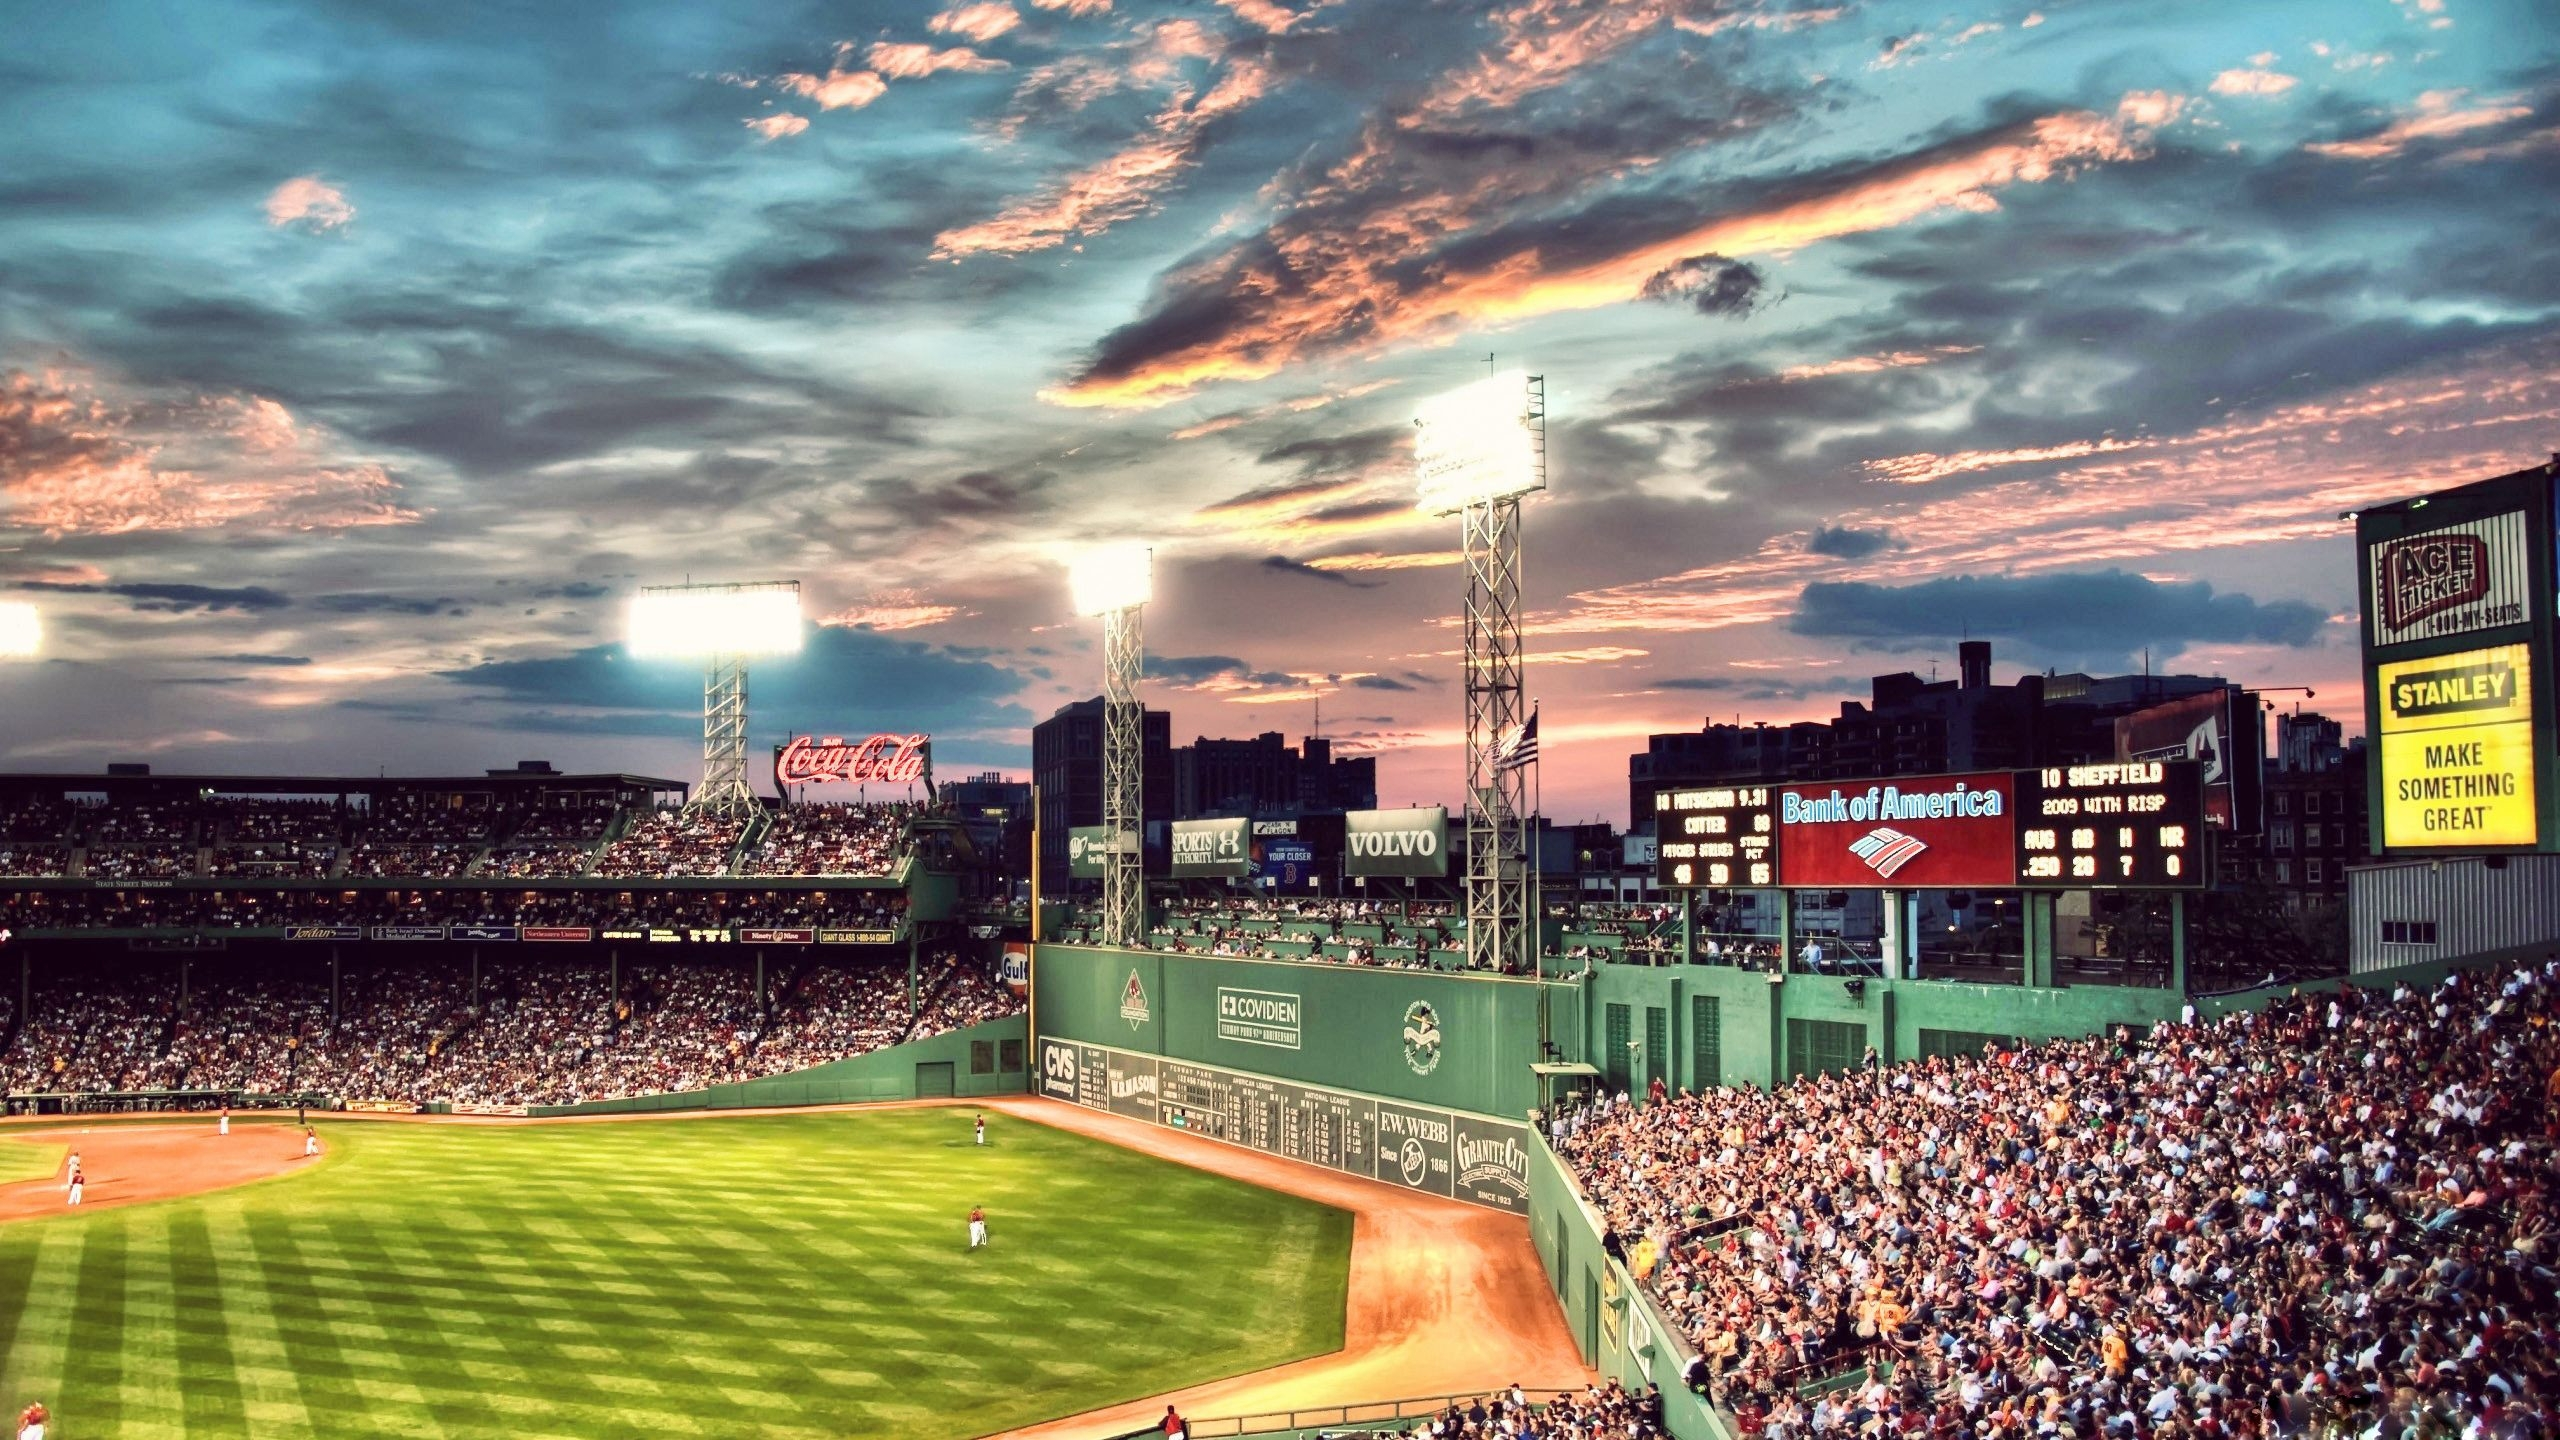 fenway park screensavers and wallpapers (61+ images)